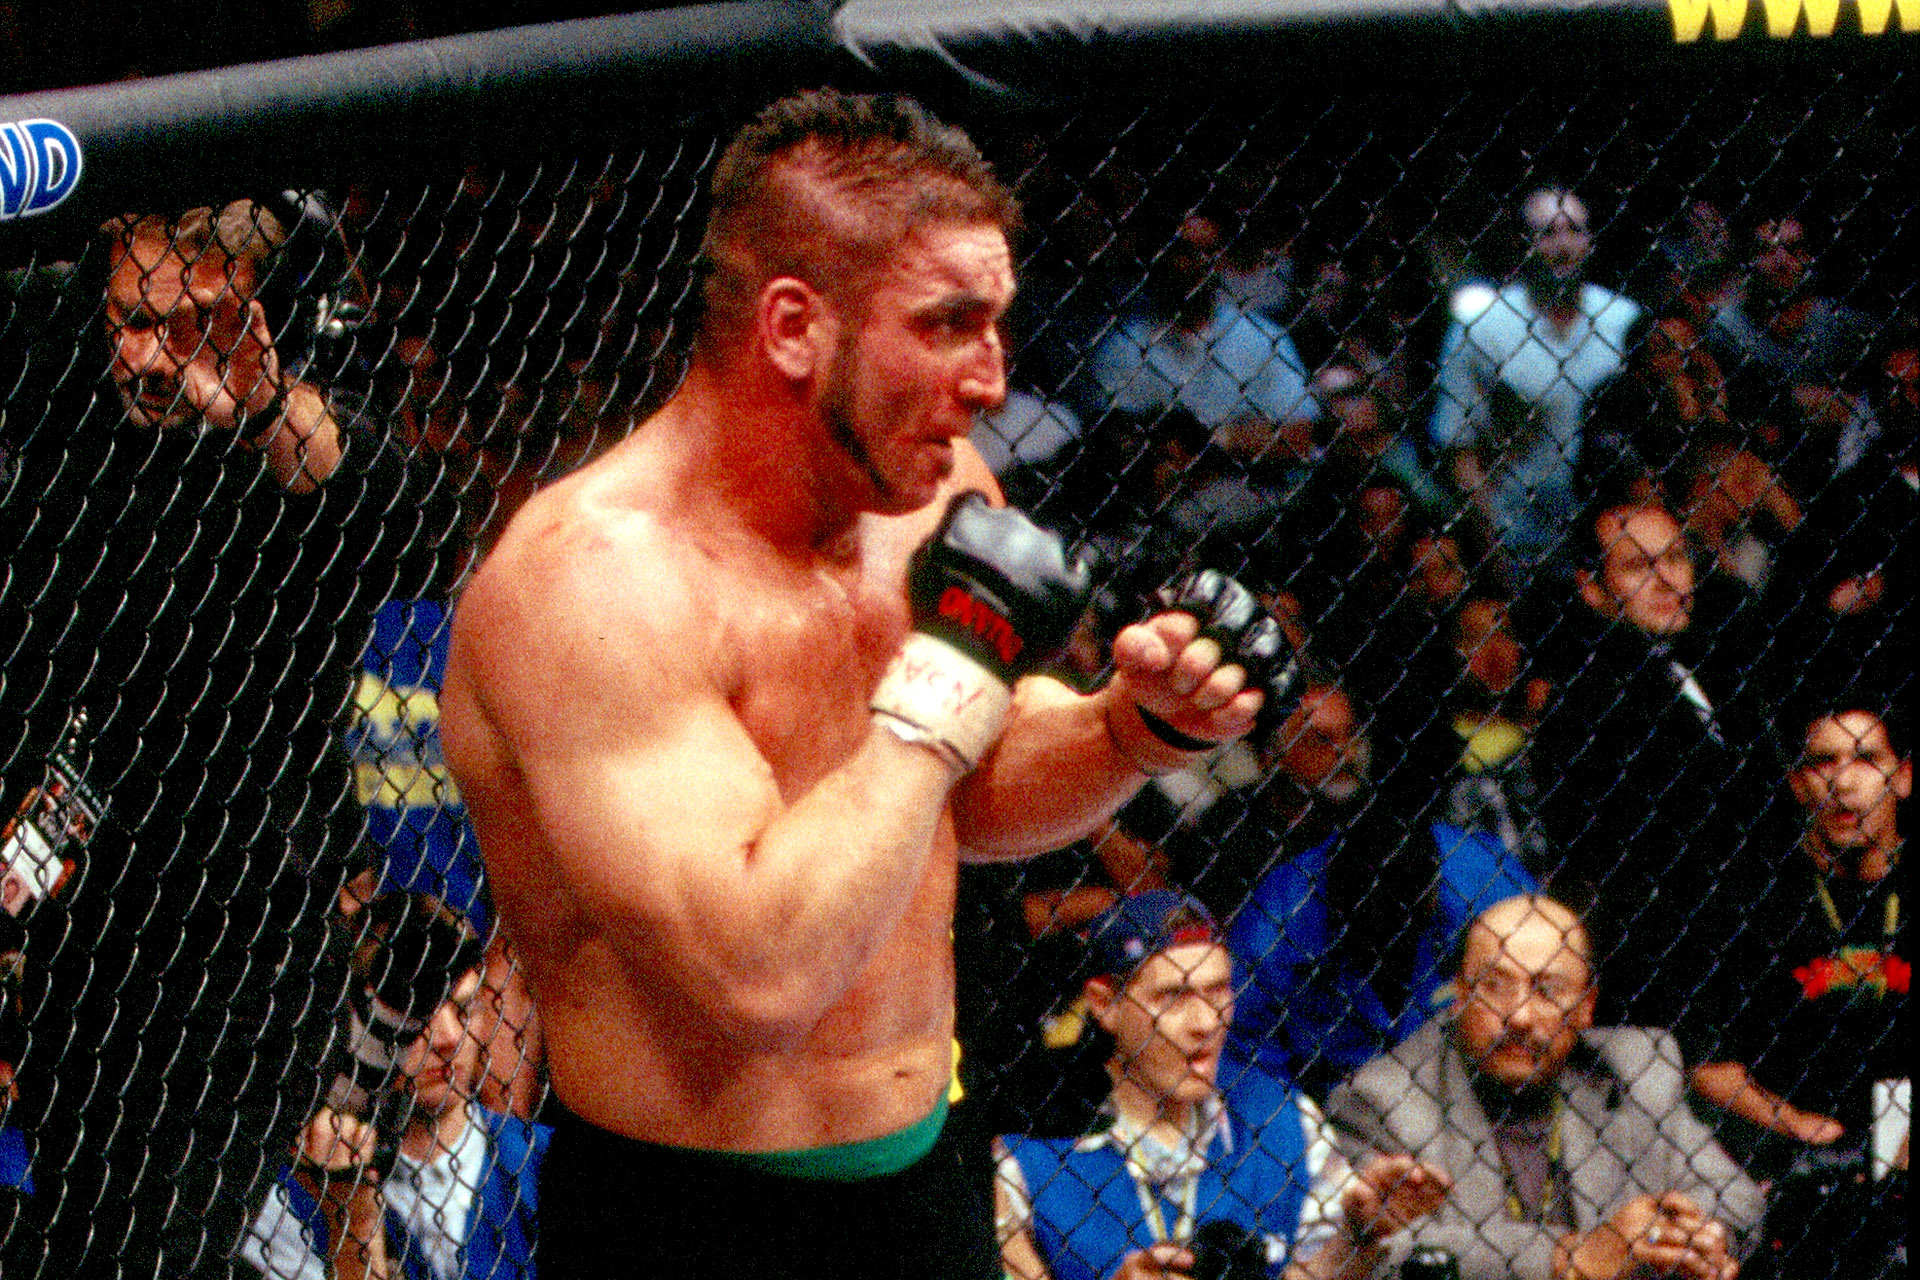 LAS VEGAS - NOVEMBER 22: Ken Shamrock during his bout with Tito Ortiz at UFC 40 at the MGM Grand Garden Arena on November 22, 2002 in Las Vegas, Nevada. (Photo by Josh Hedges/Zuffa LLC/Zuffa LLC via Getty Images)